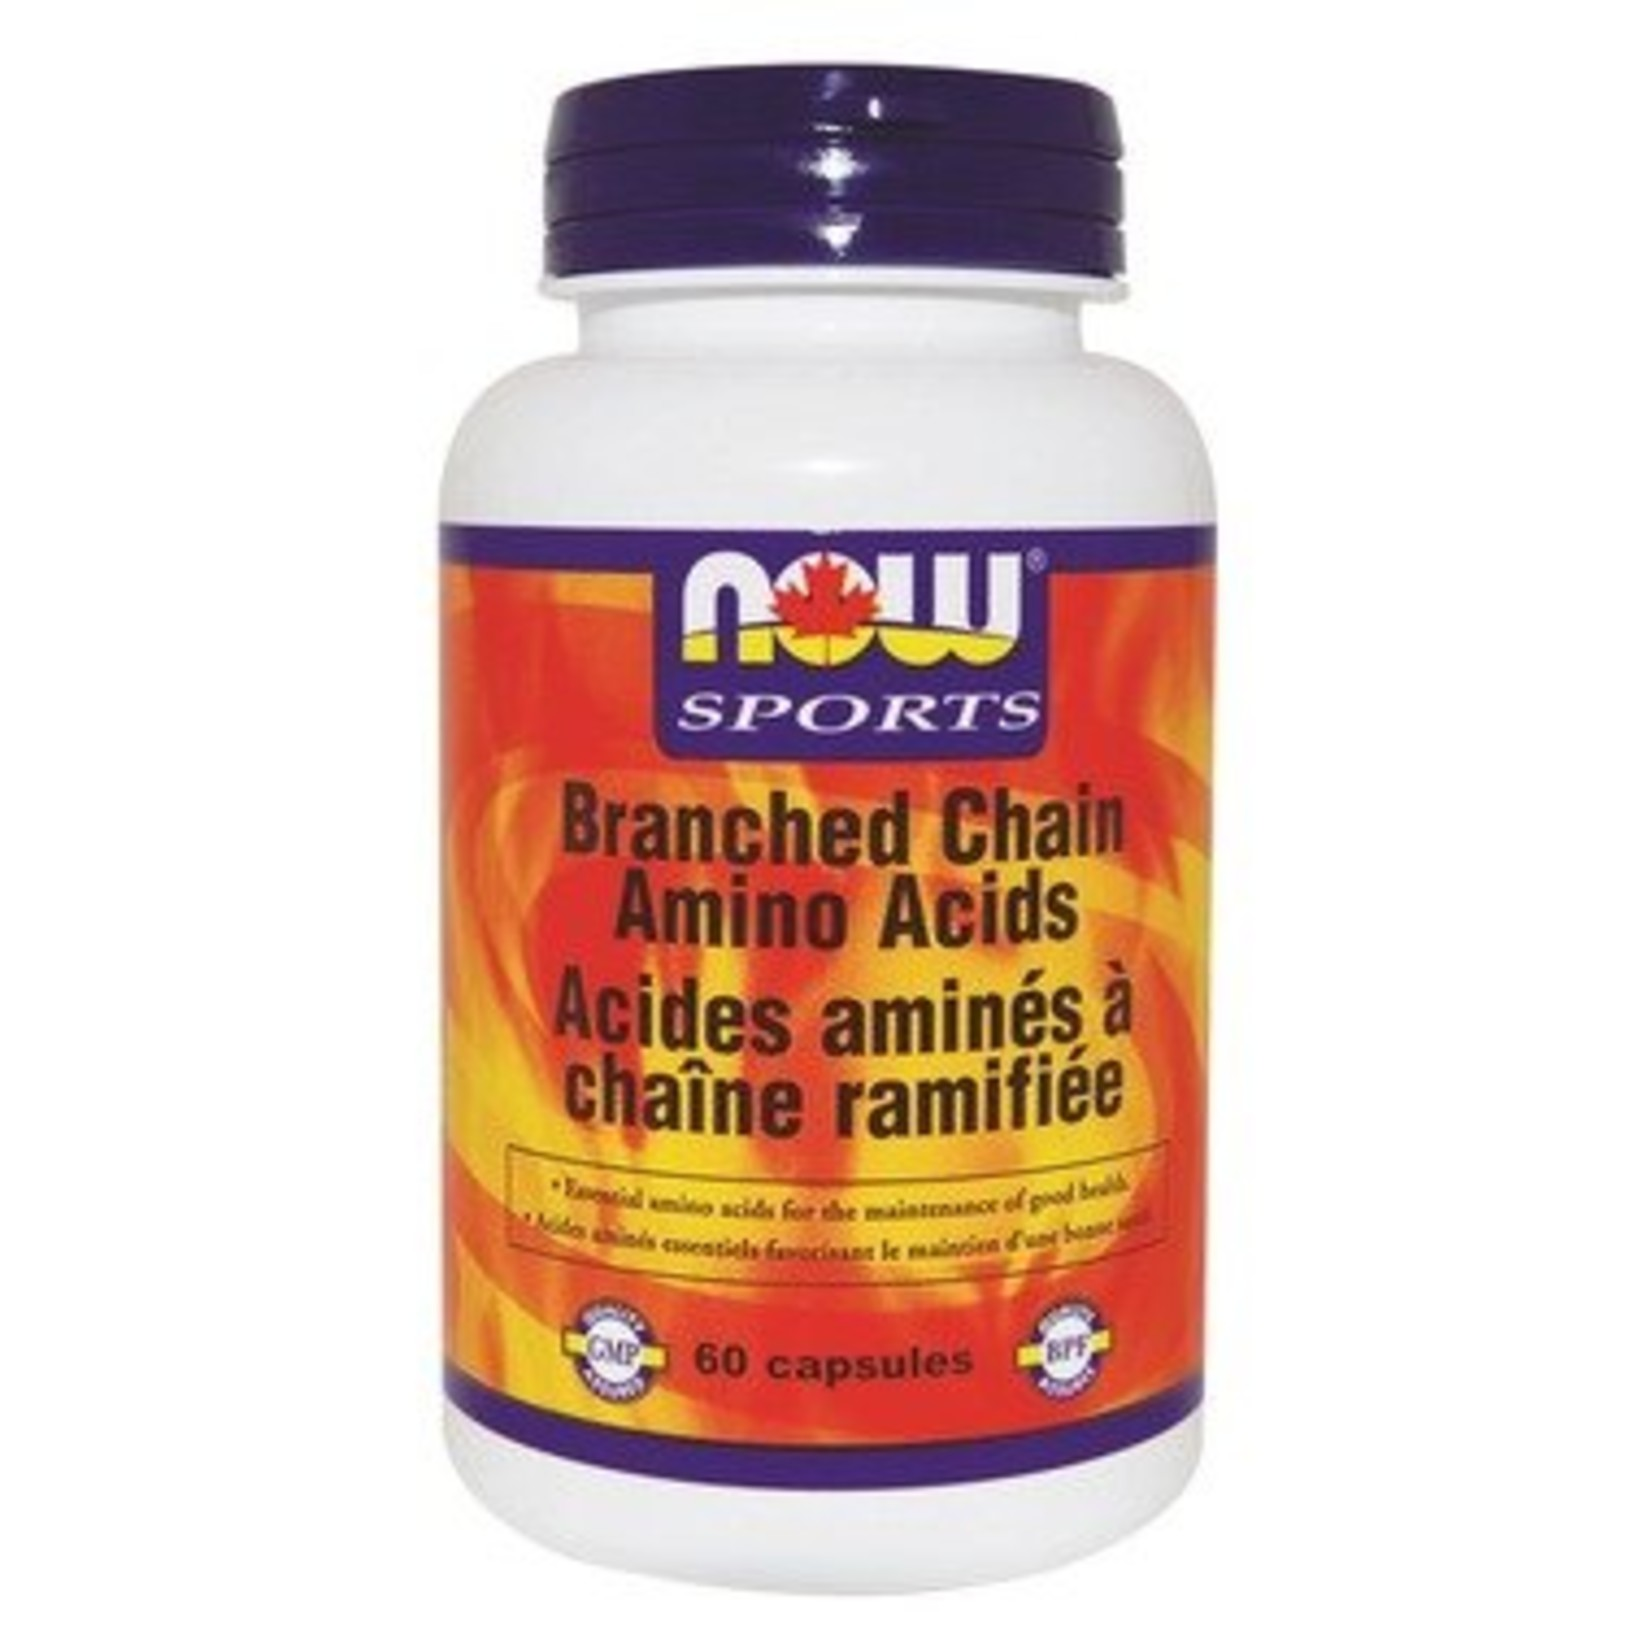 NOW NOW Branched Chain Amino Acids 60caps